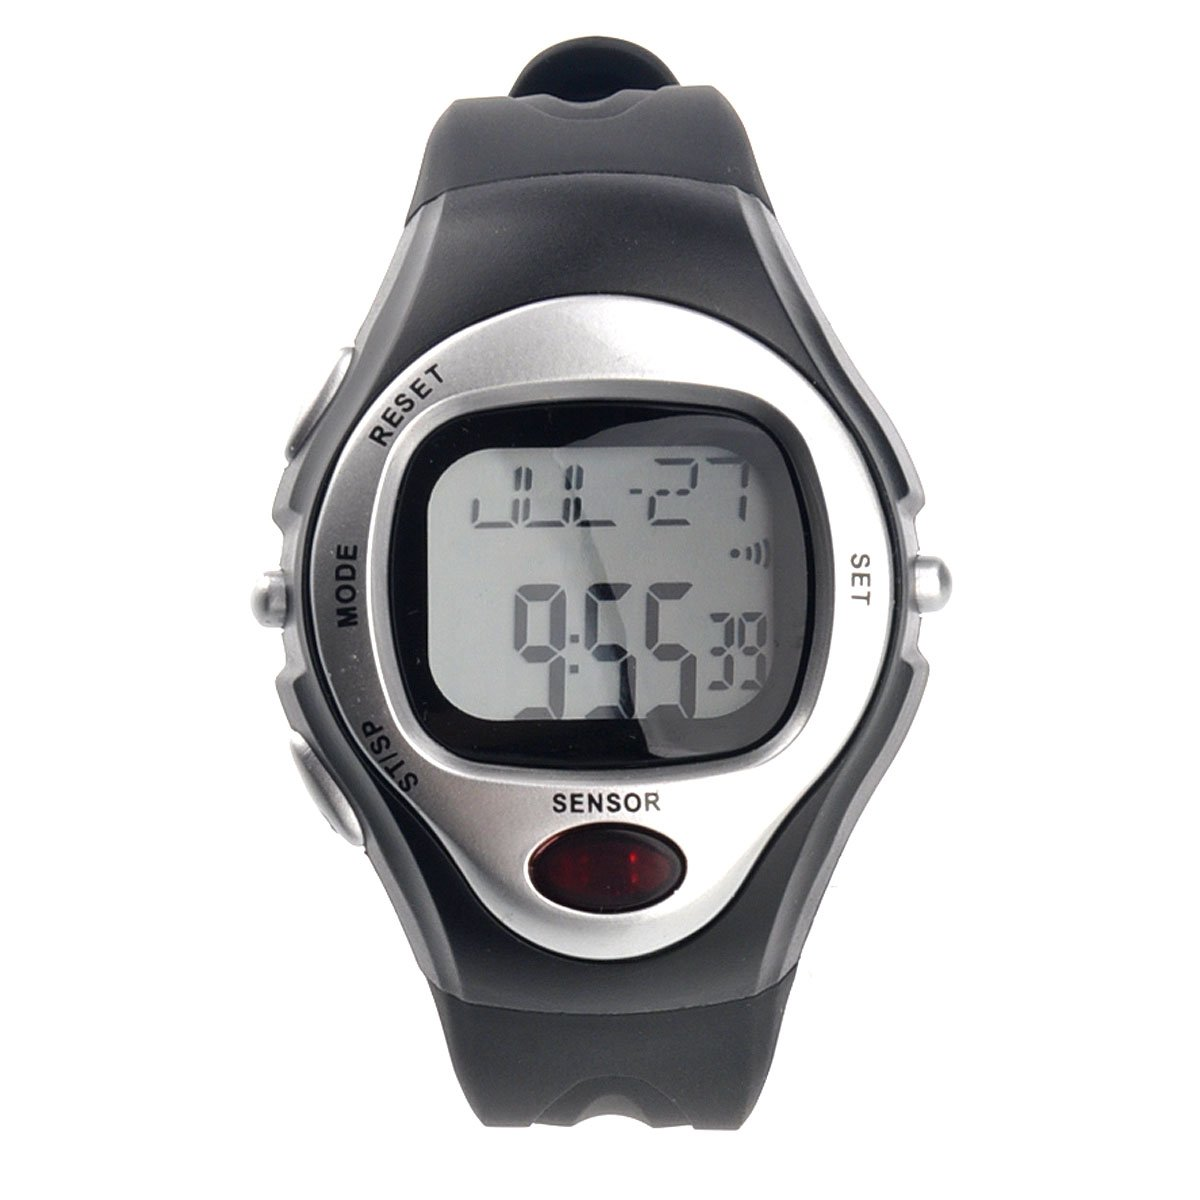 YCYS-R022M Waterproof Sports Pulse Rate Monitor Counter Digital (Silver)